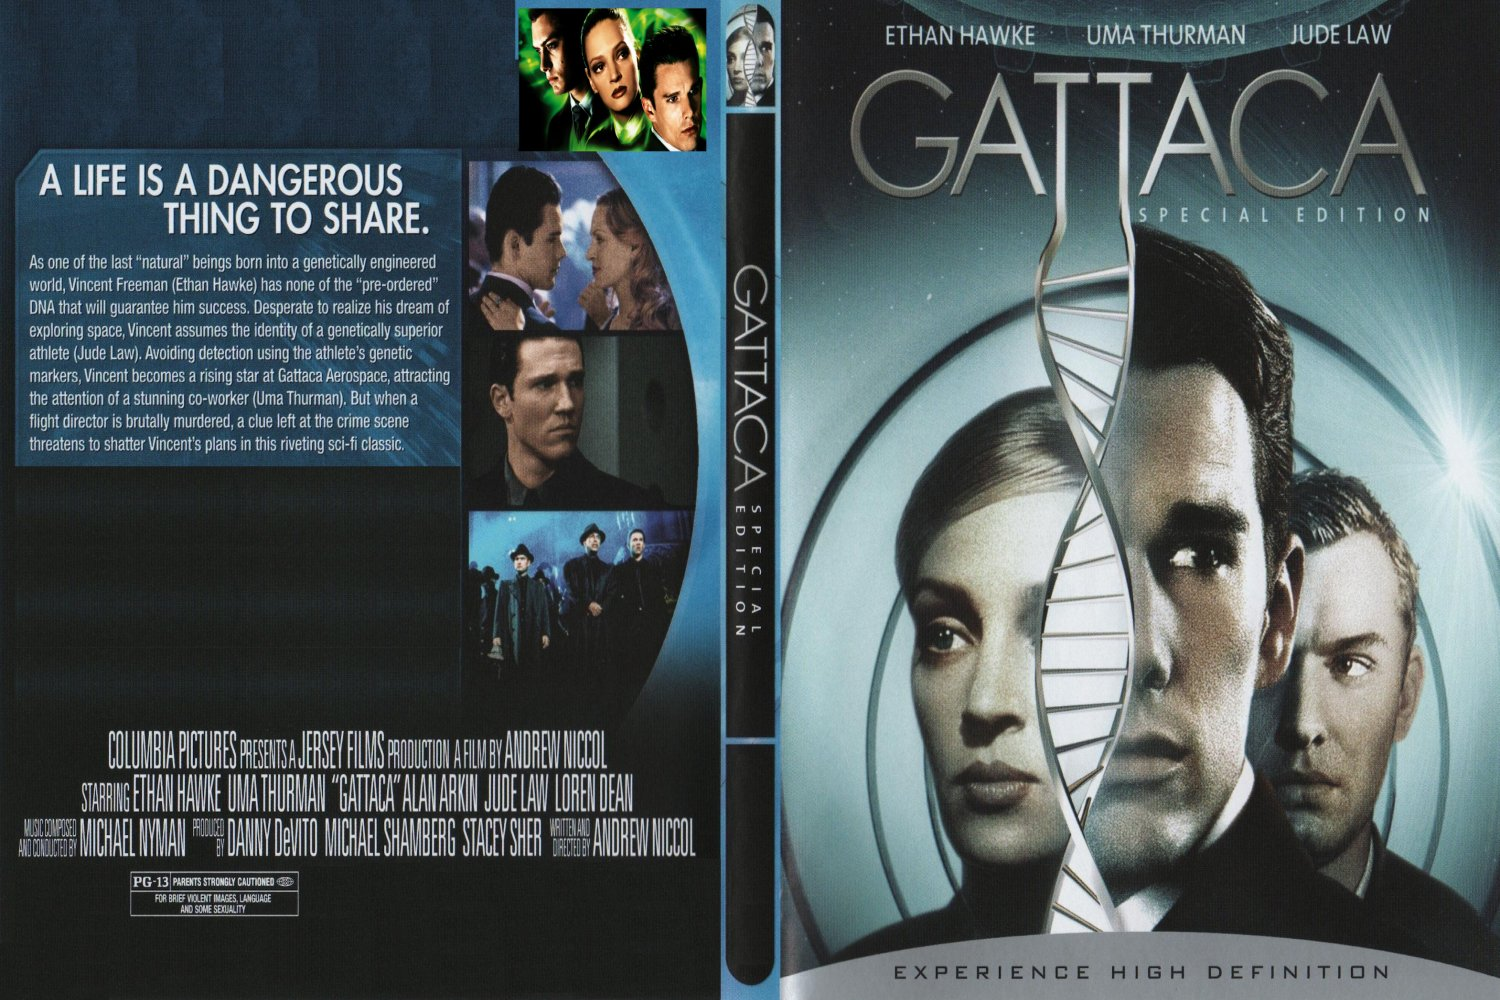 The issues represented in the movie gattaca